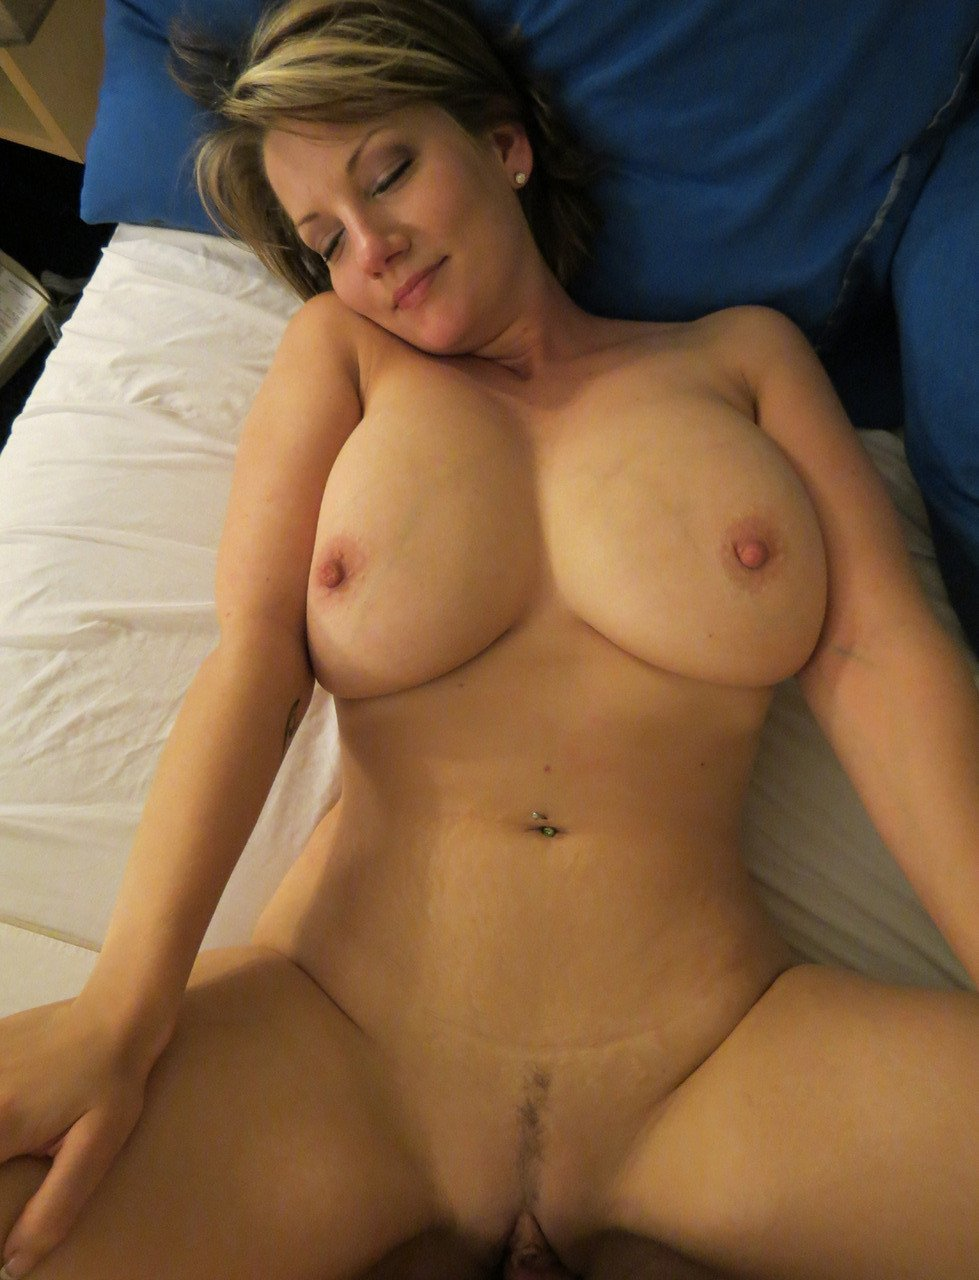 This milfs having sex fucking